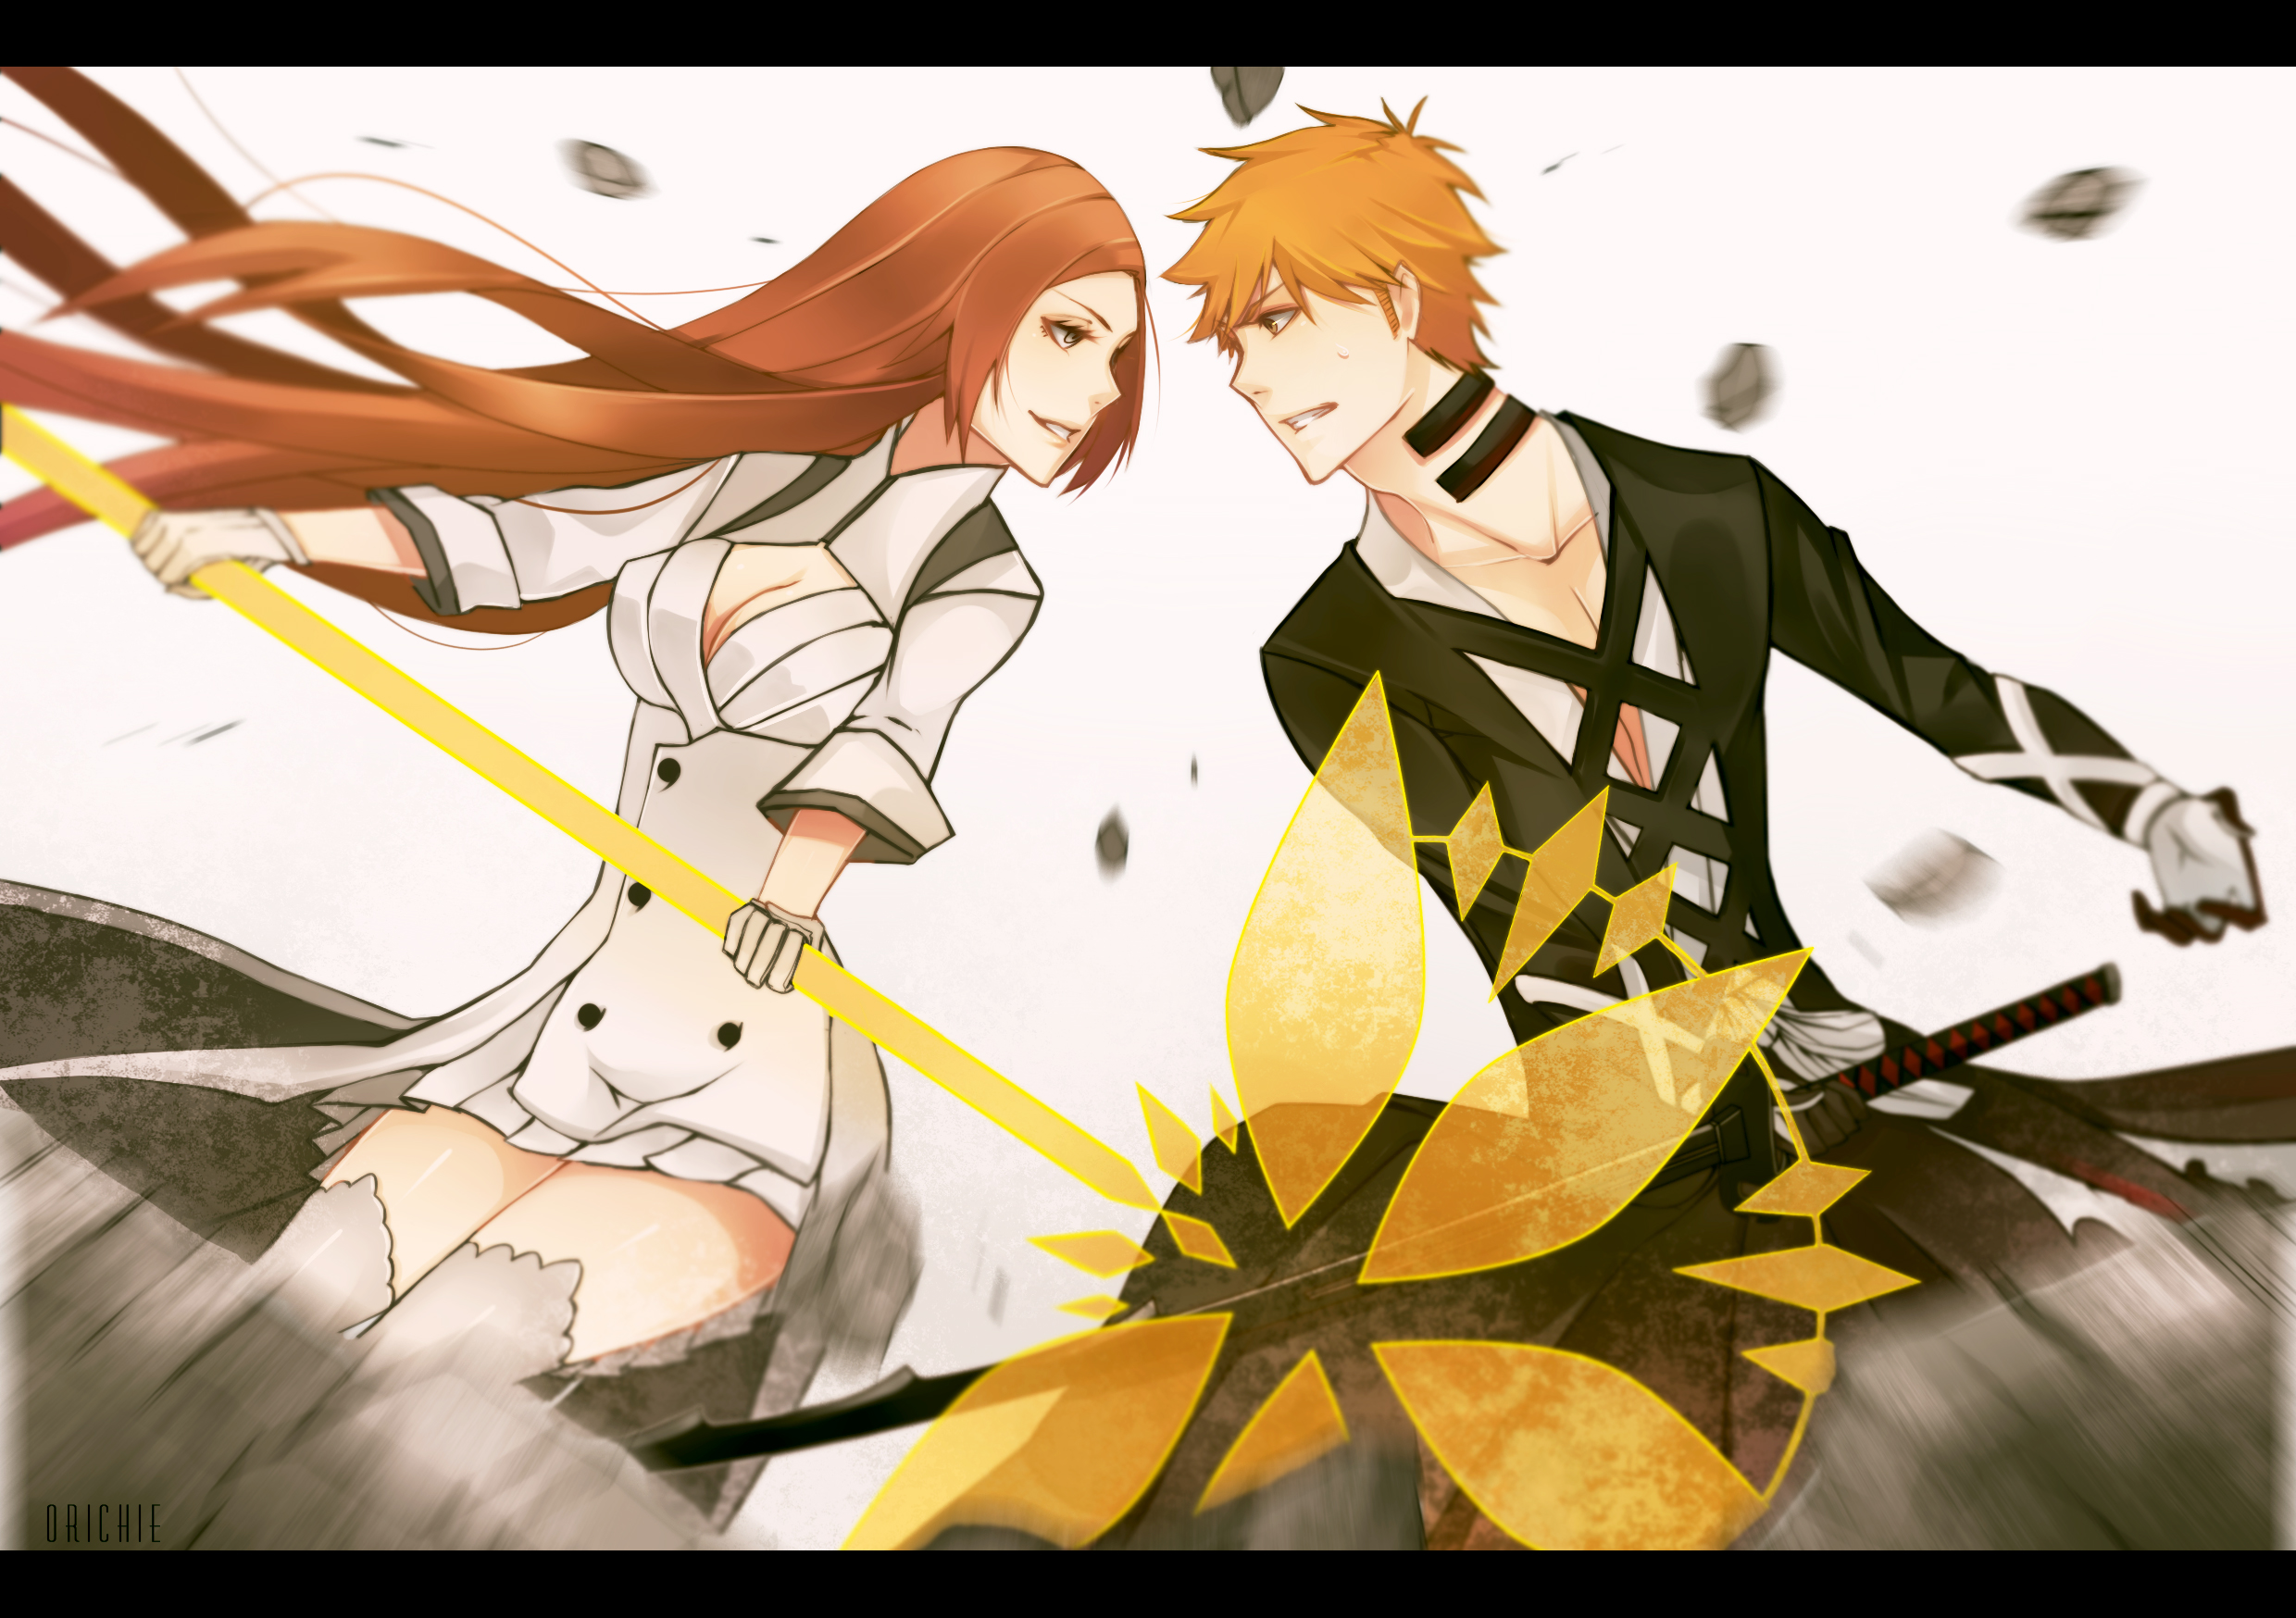 ichigo and orihime relationship